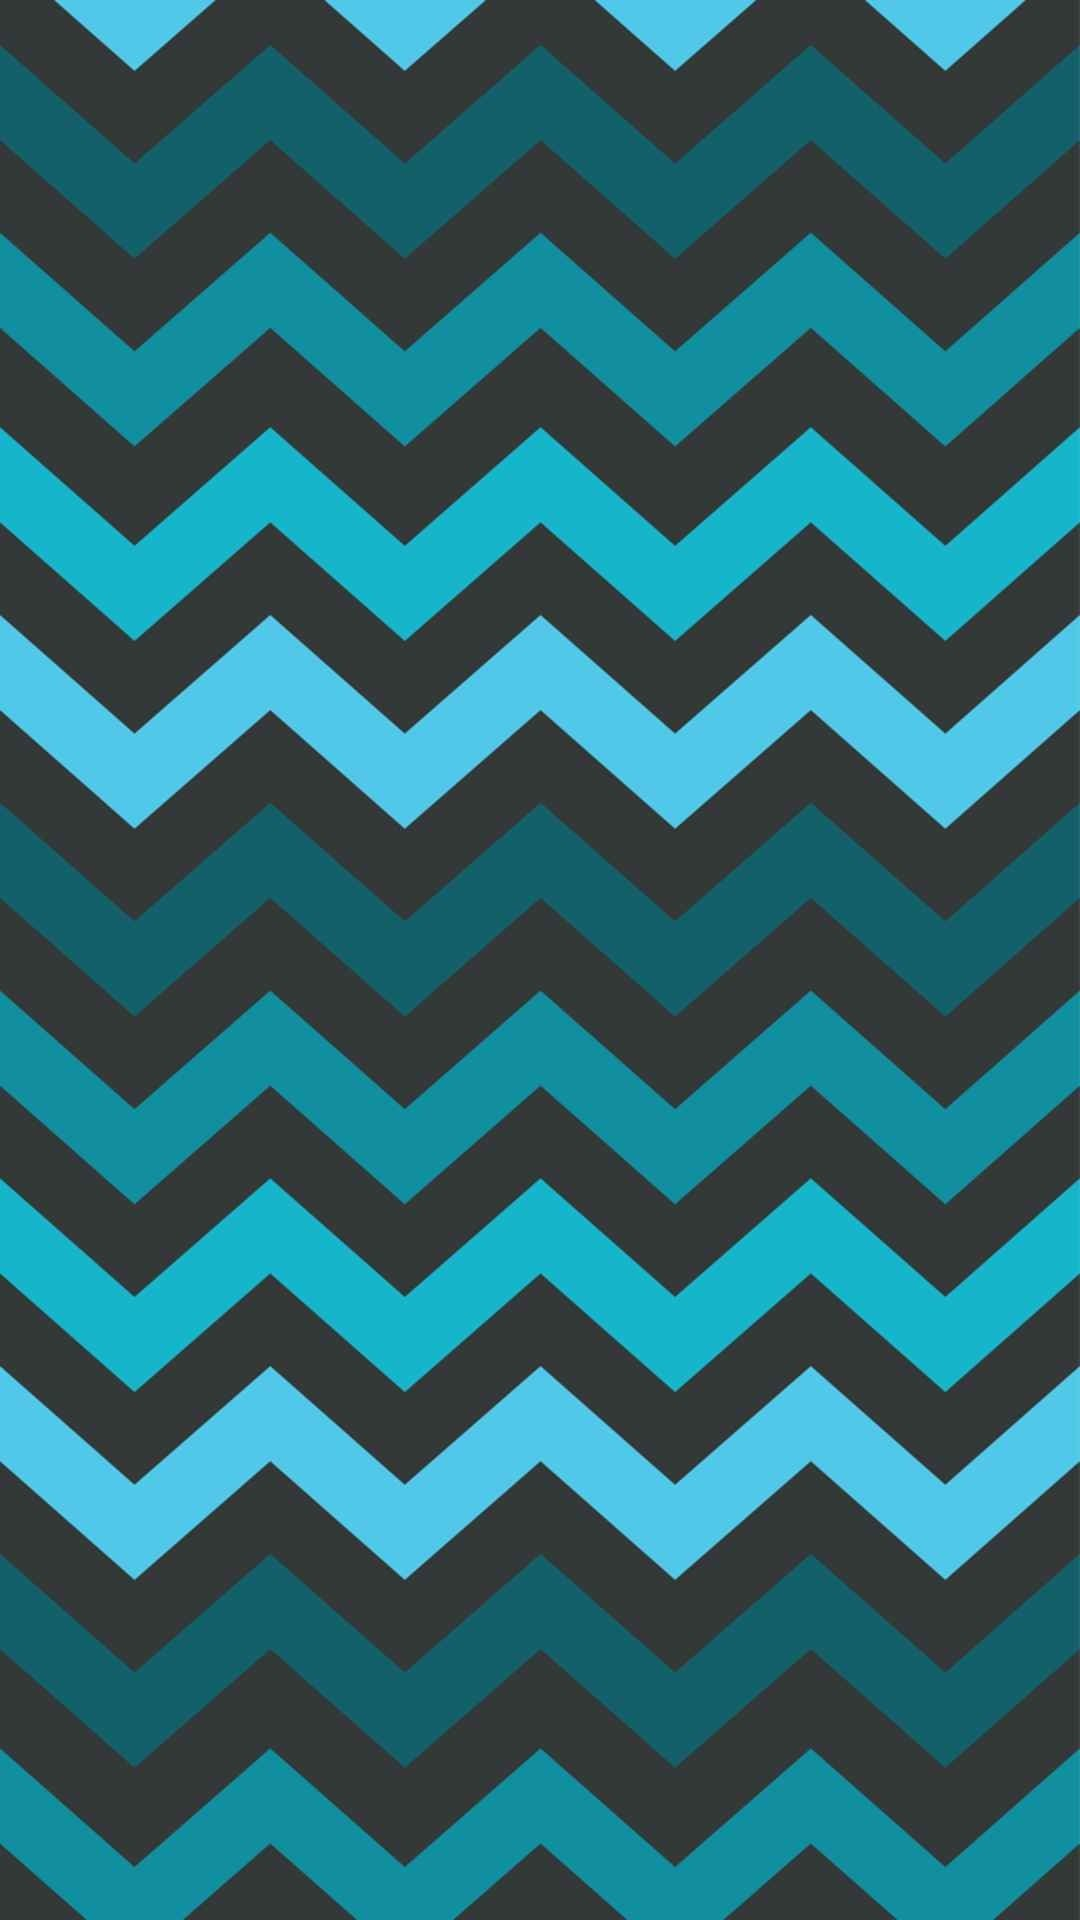 1080x1920 Chevron Dim Blue and Black iPhone 6 Plus Wallpaper - Zigzag Pattern, #iPhone  #